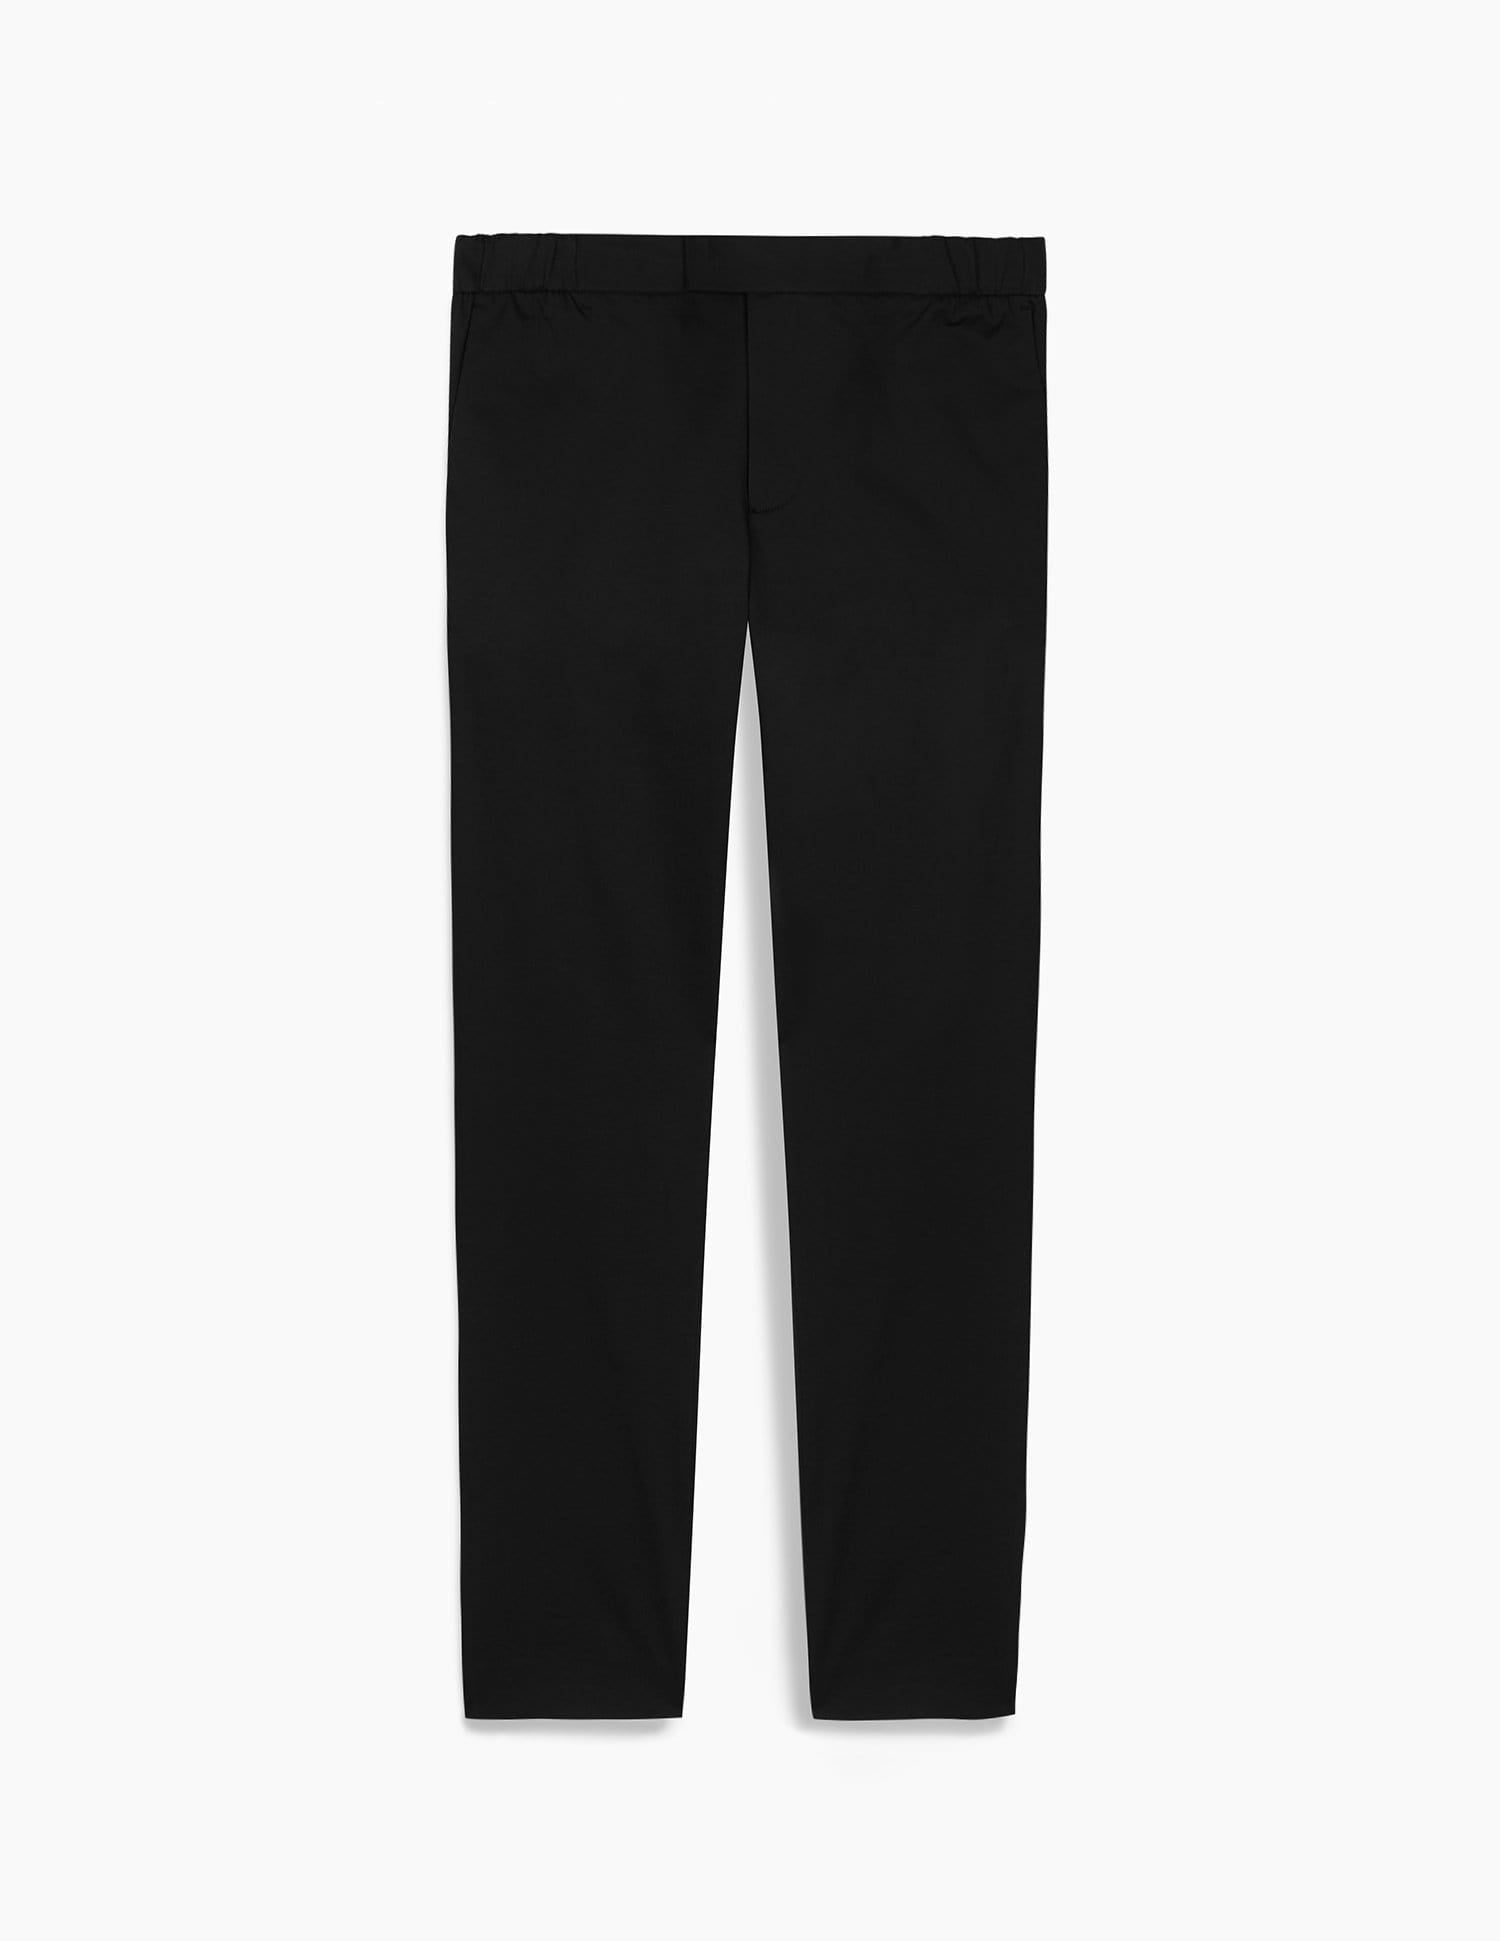 The 24 Trousers || Black | Stretch Cotton